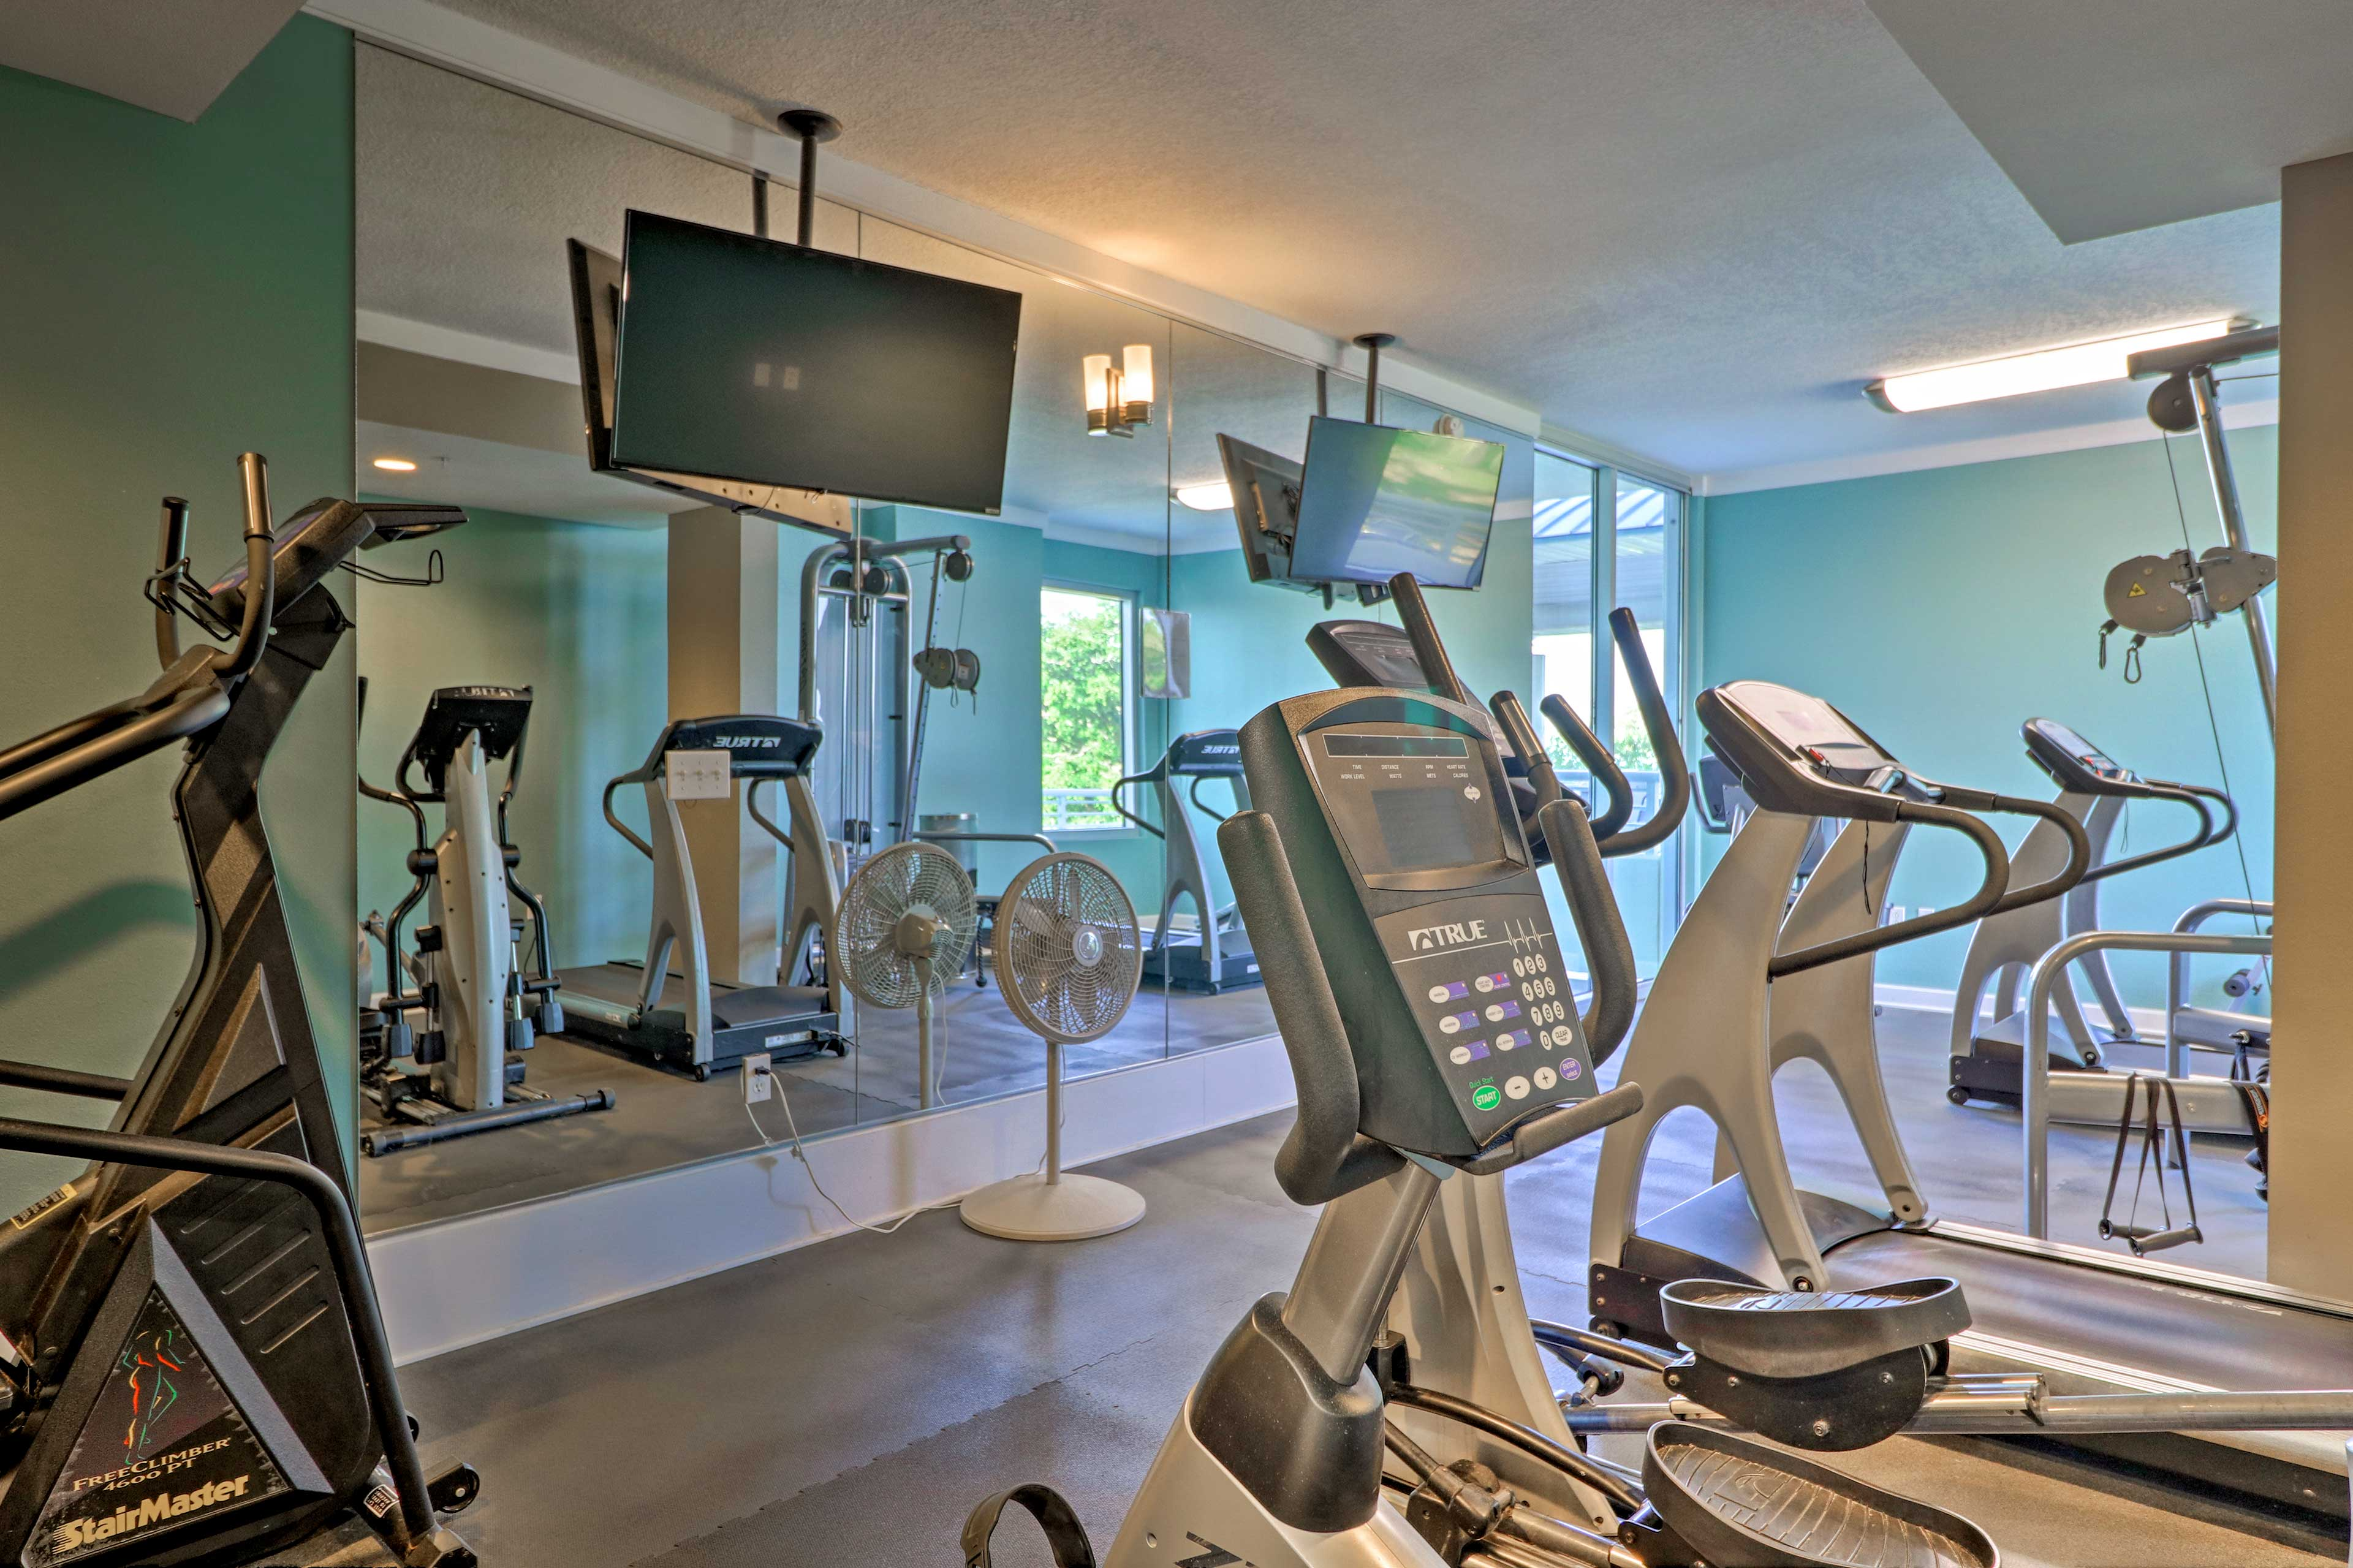 There's no need to skip your workout routine while you're away!